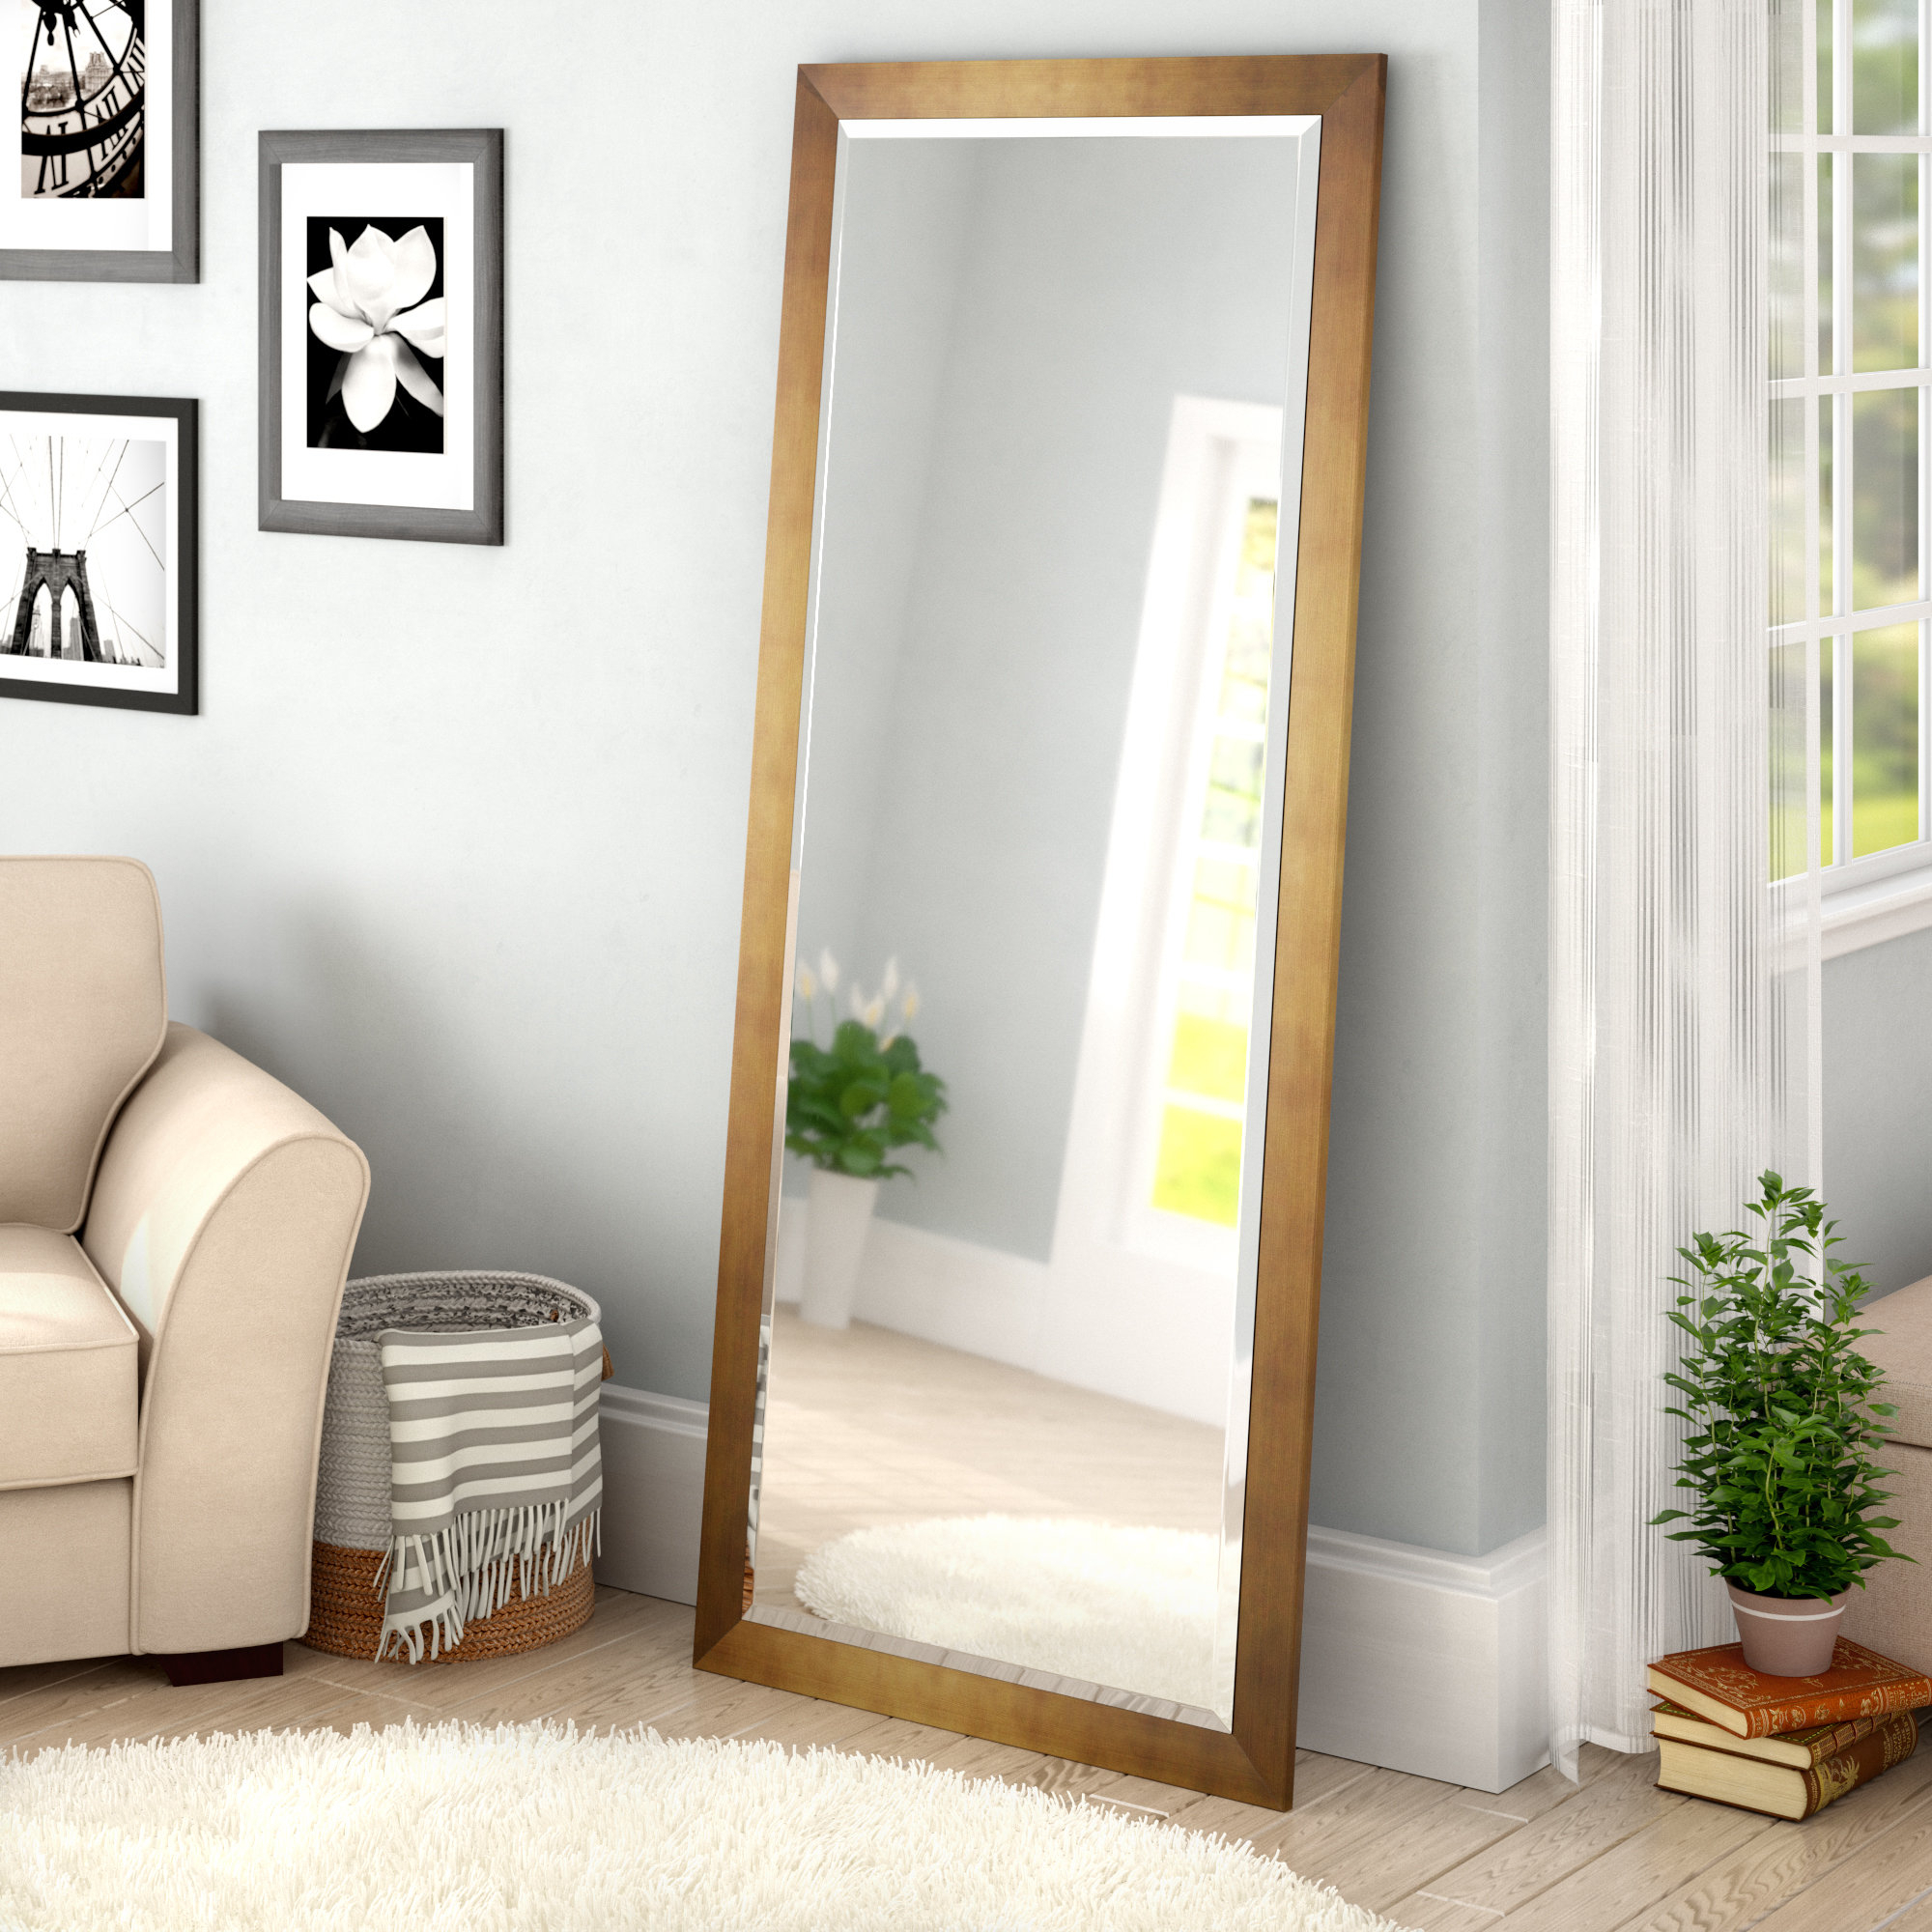 Apostol Slender Body Floor Traditional Full Length Mirror Pertaining To Best And Newest Dalessio Wide Tall Full Length Mirrors (View 2 of 20)